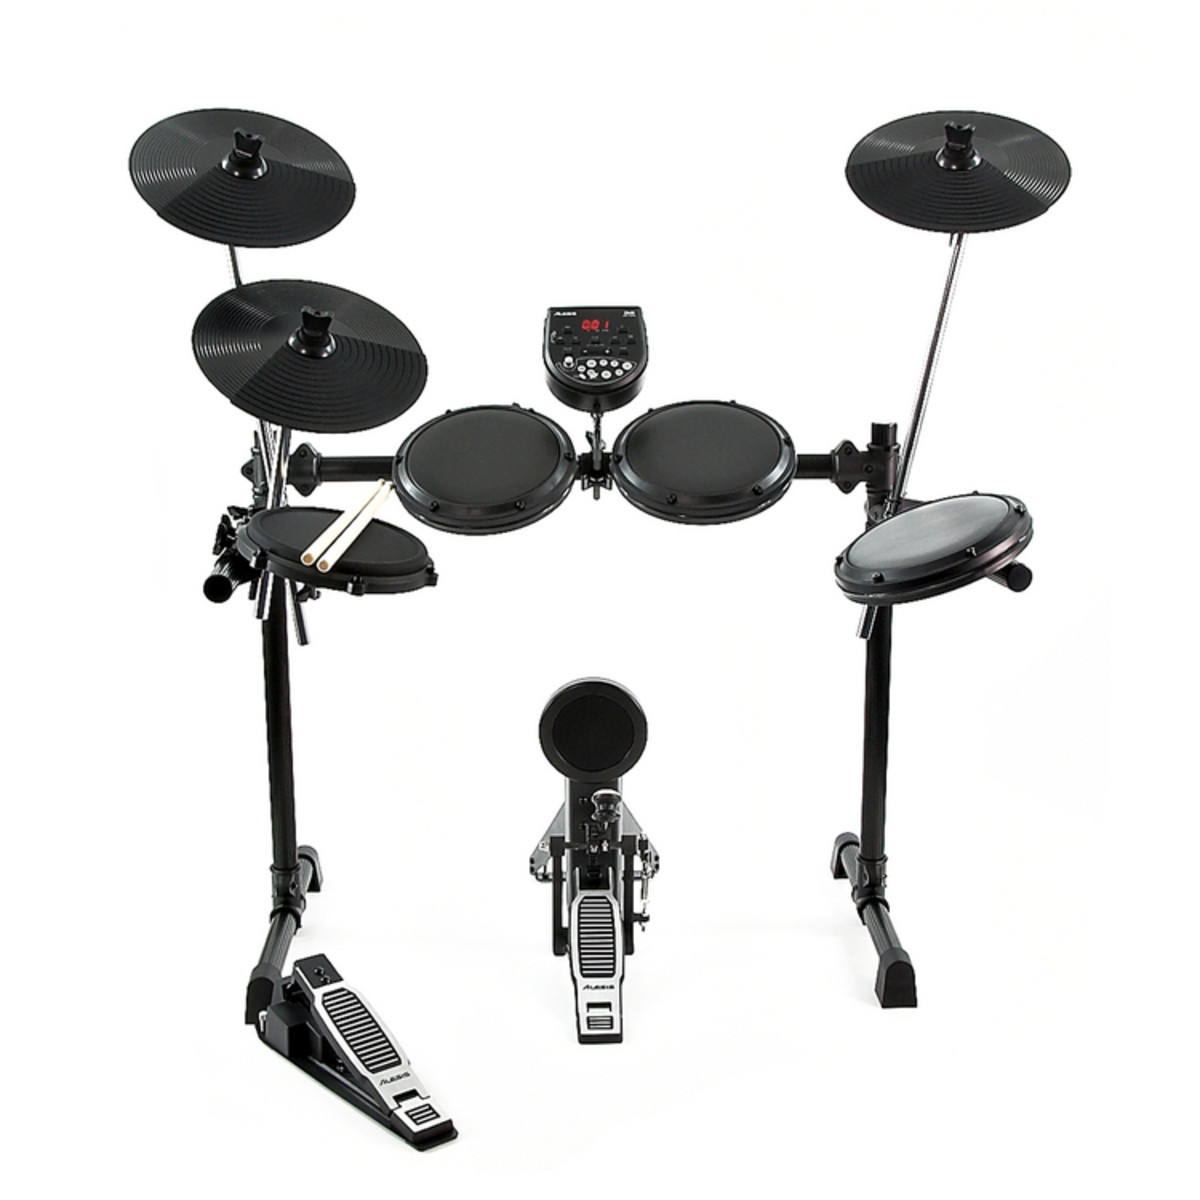 Alesis DM6 Performance Electronic Drum Kit - Nearly New